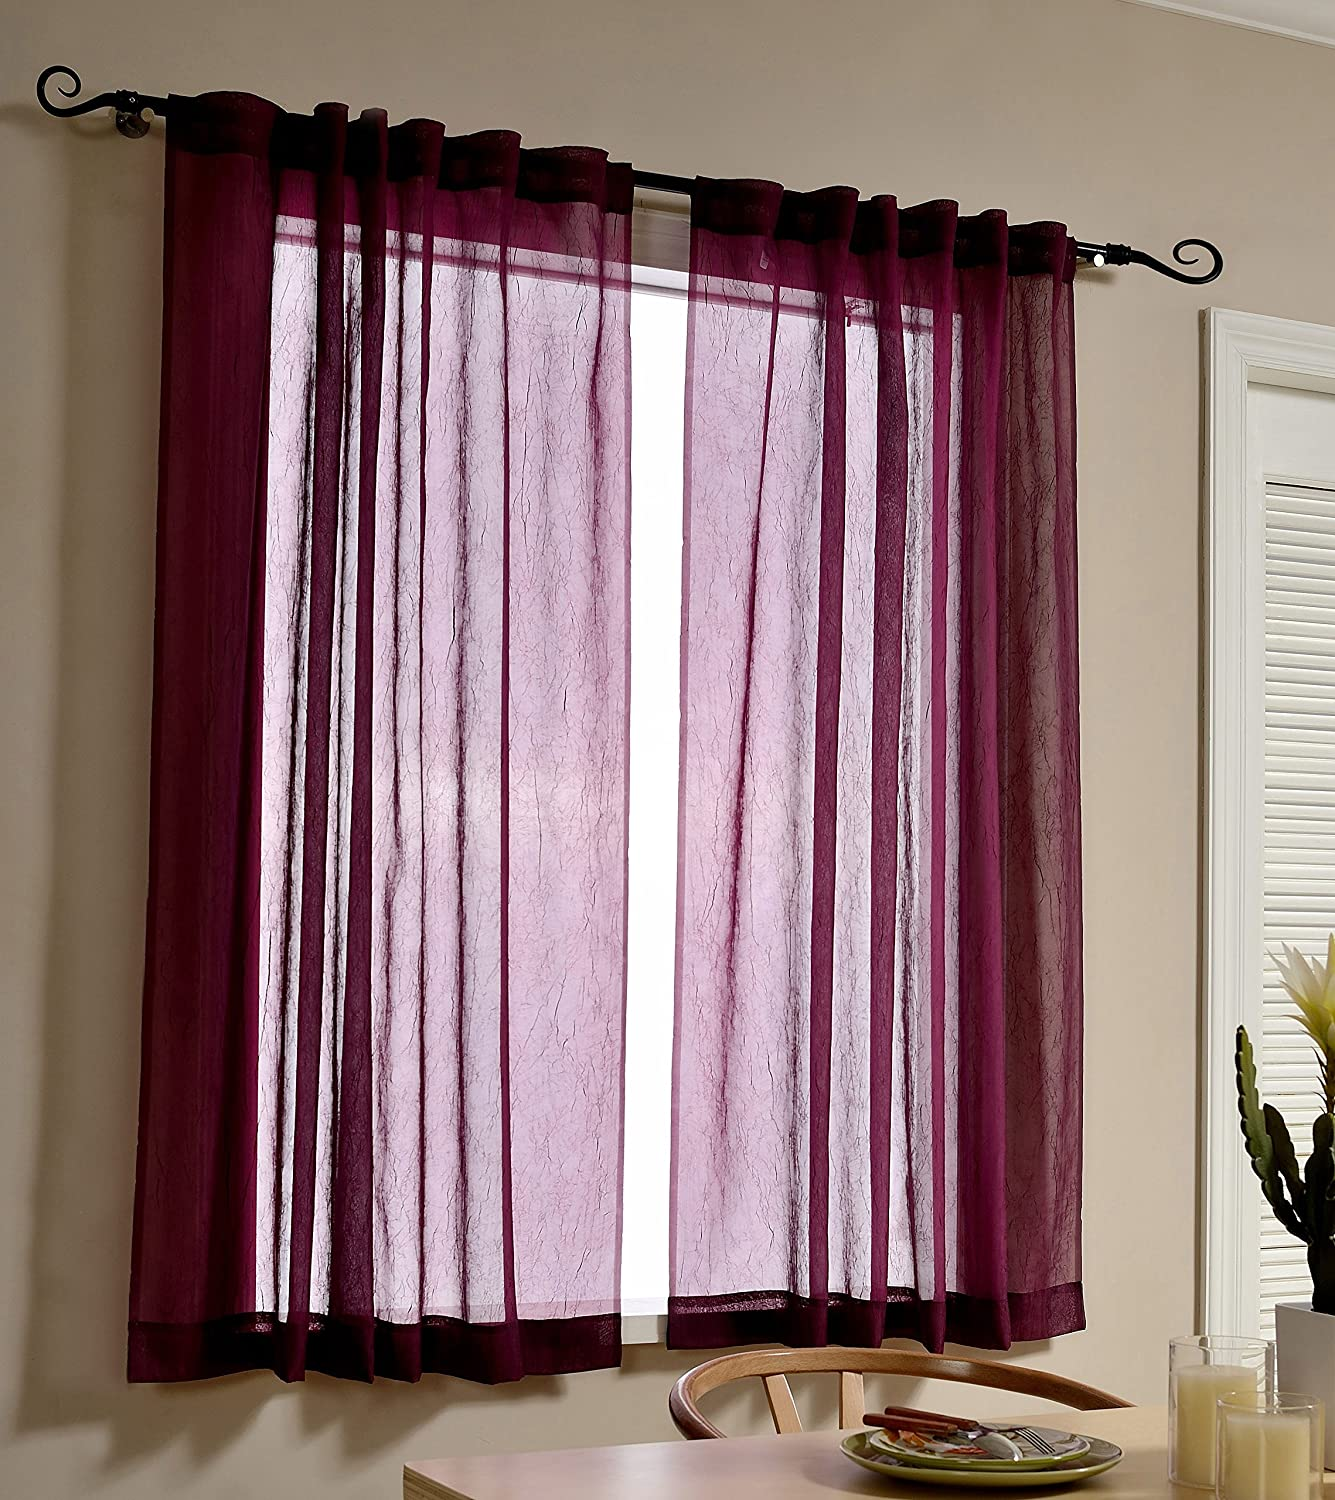 MYSKY HOME Back Tab and Rod Pocket Window Crushed Voile Sheer Curtain Panels, Purple